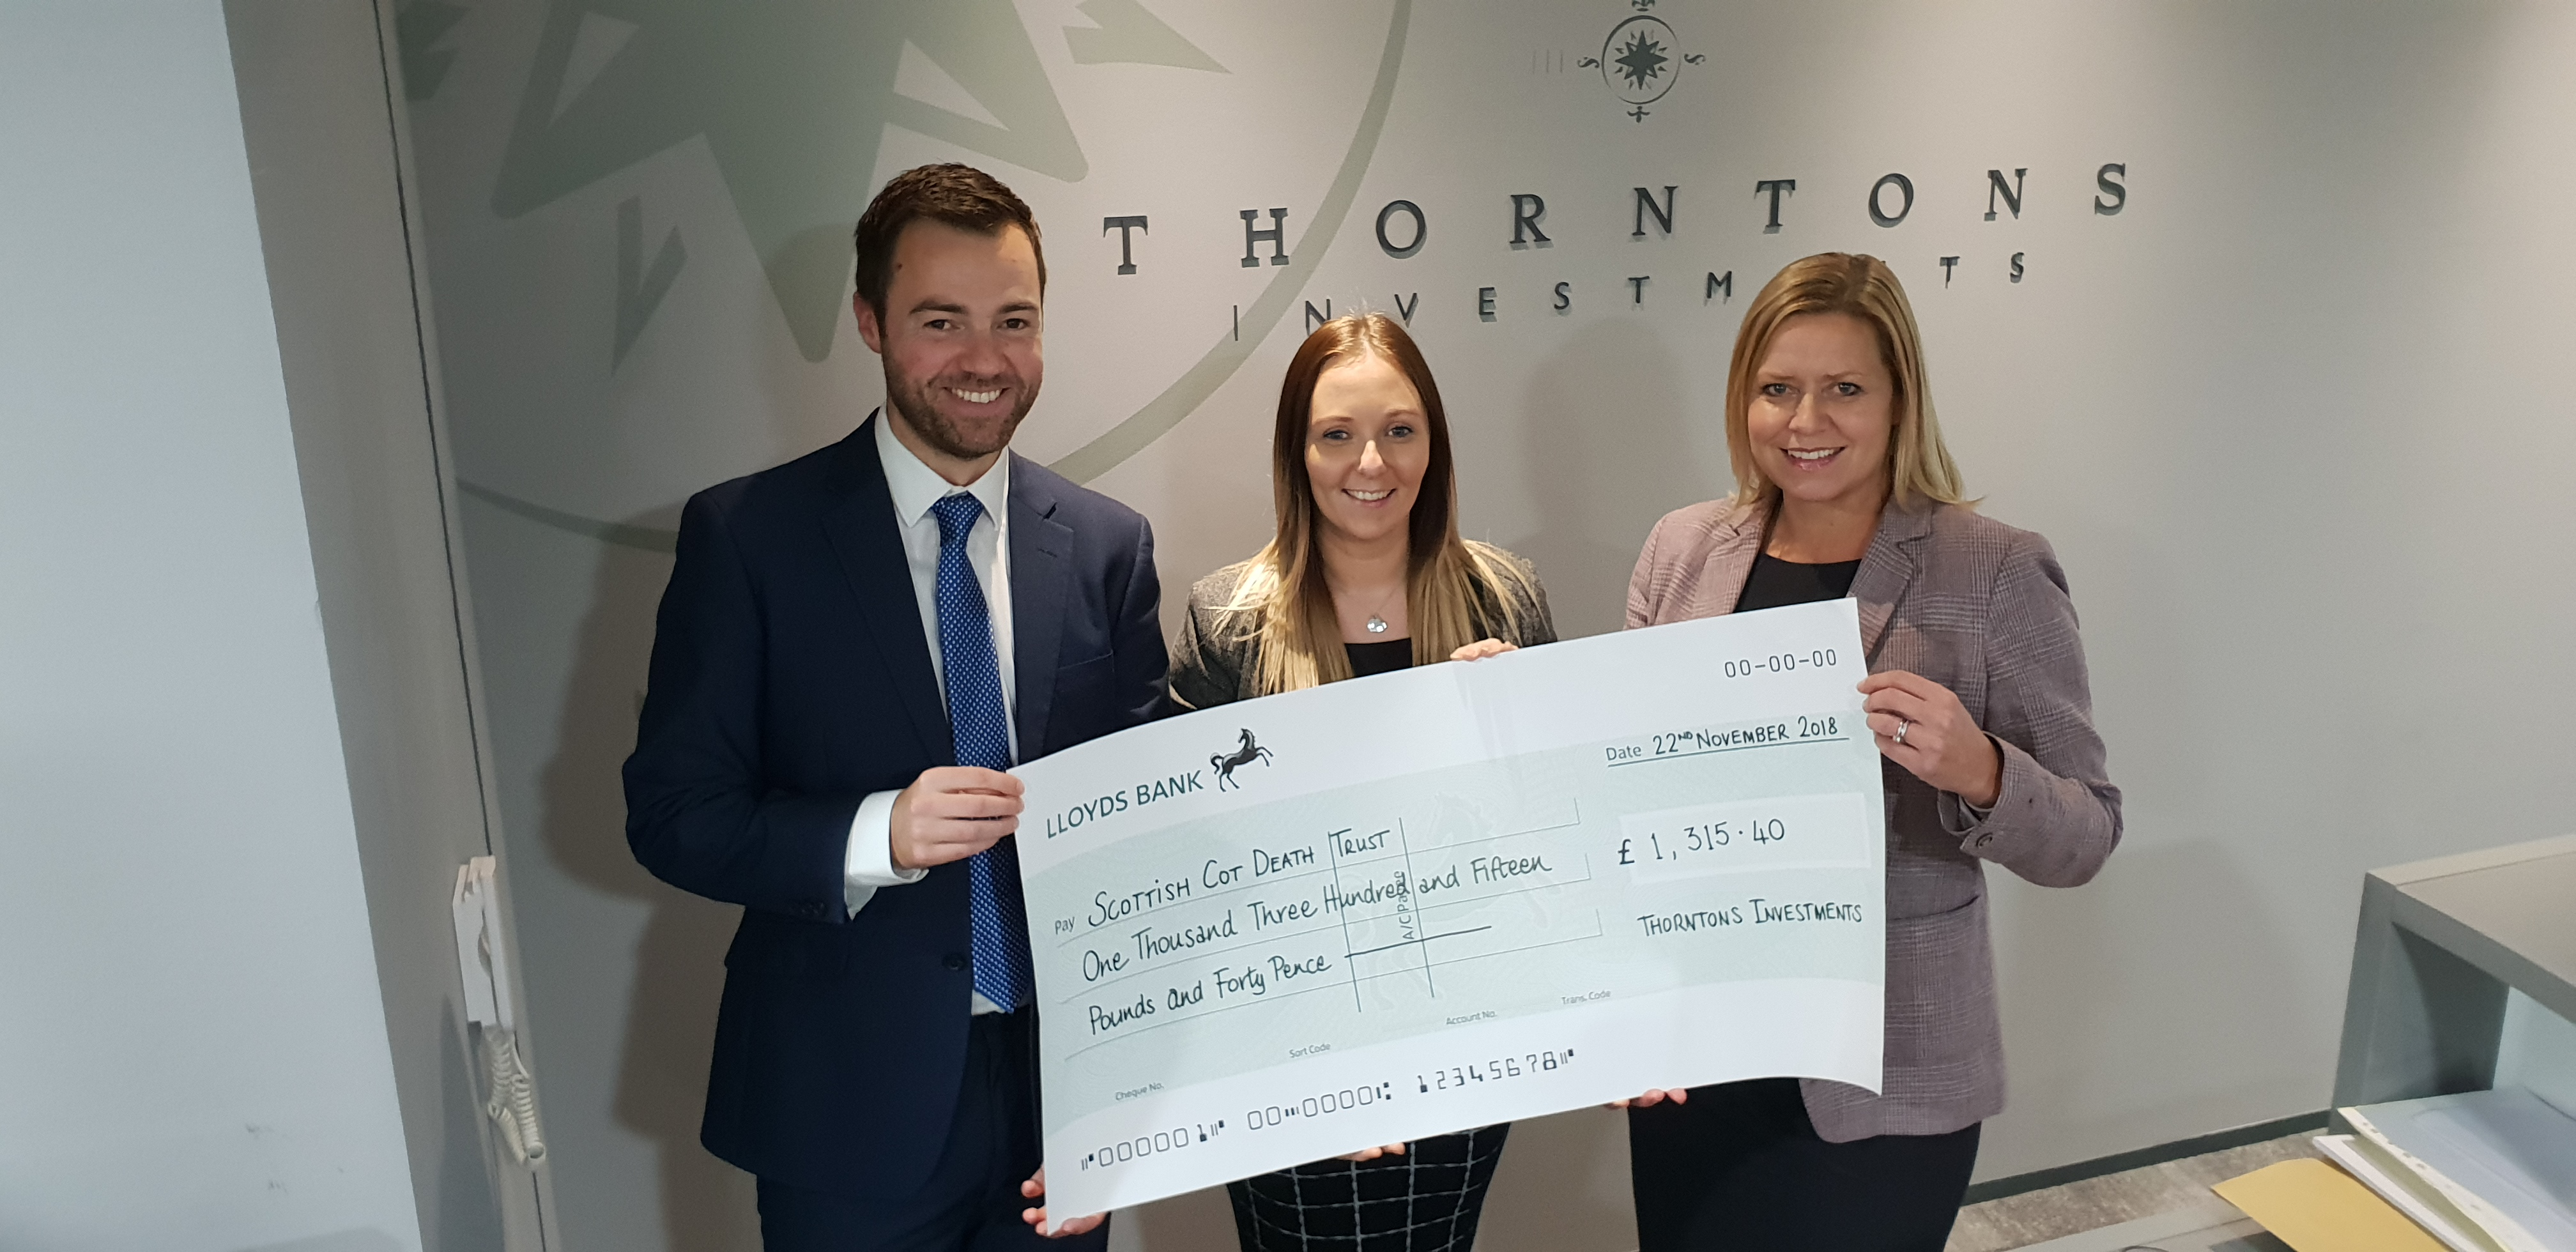 Thorntons Investments staff raise vital funds for Cot Death Trust